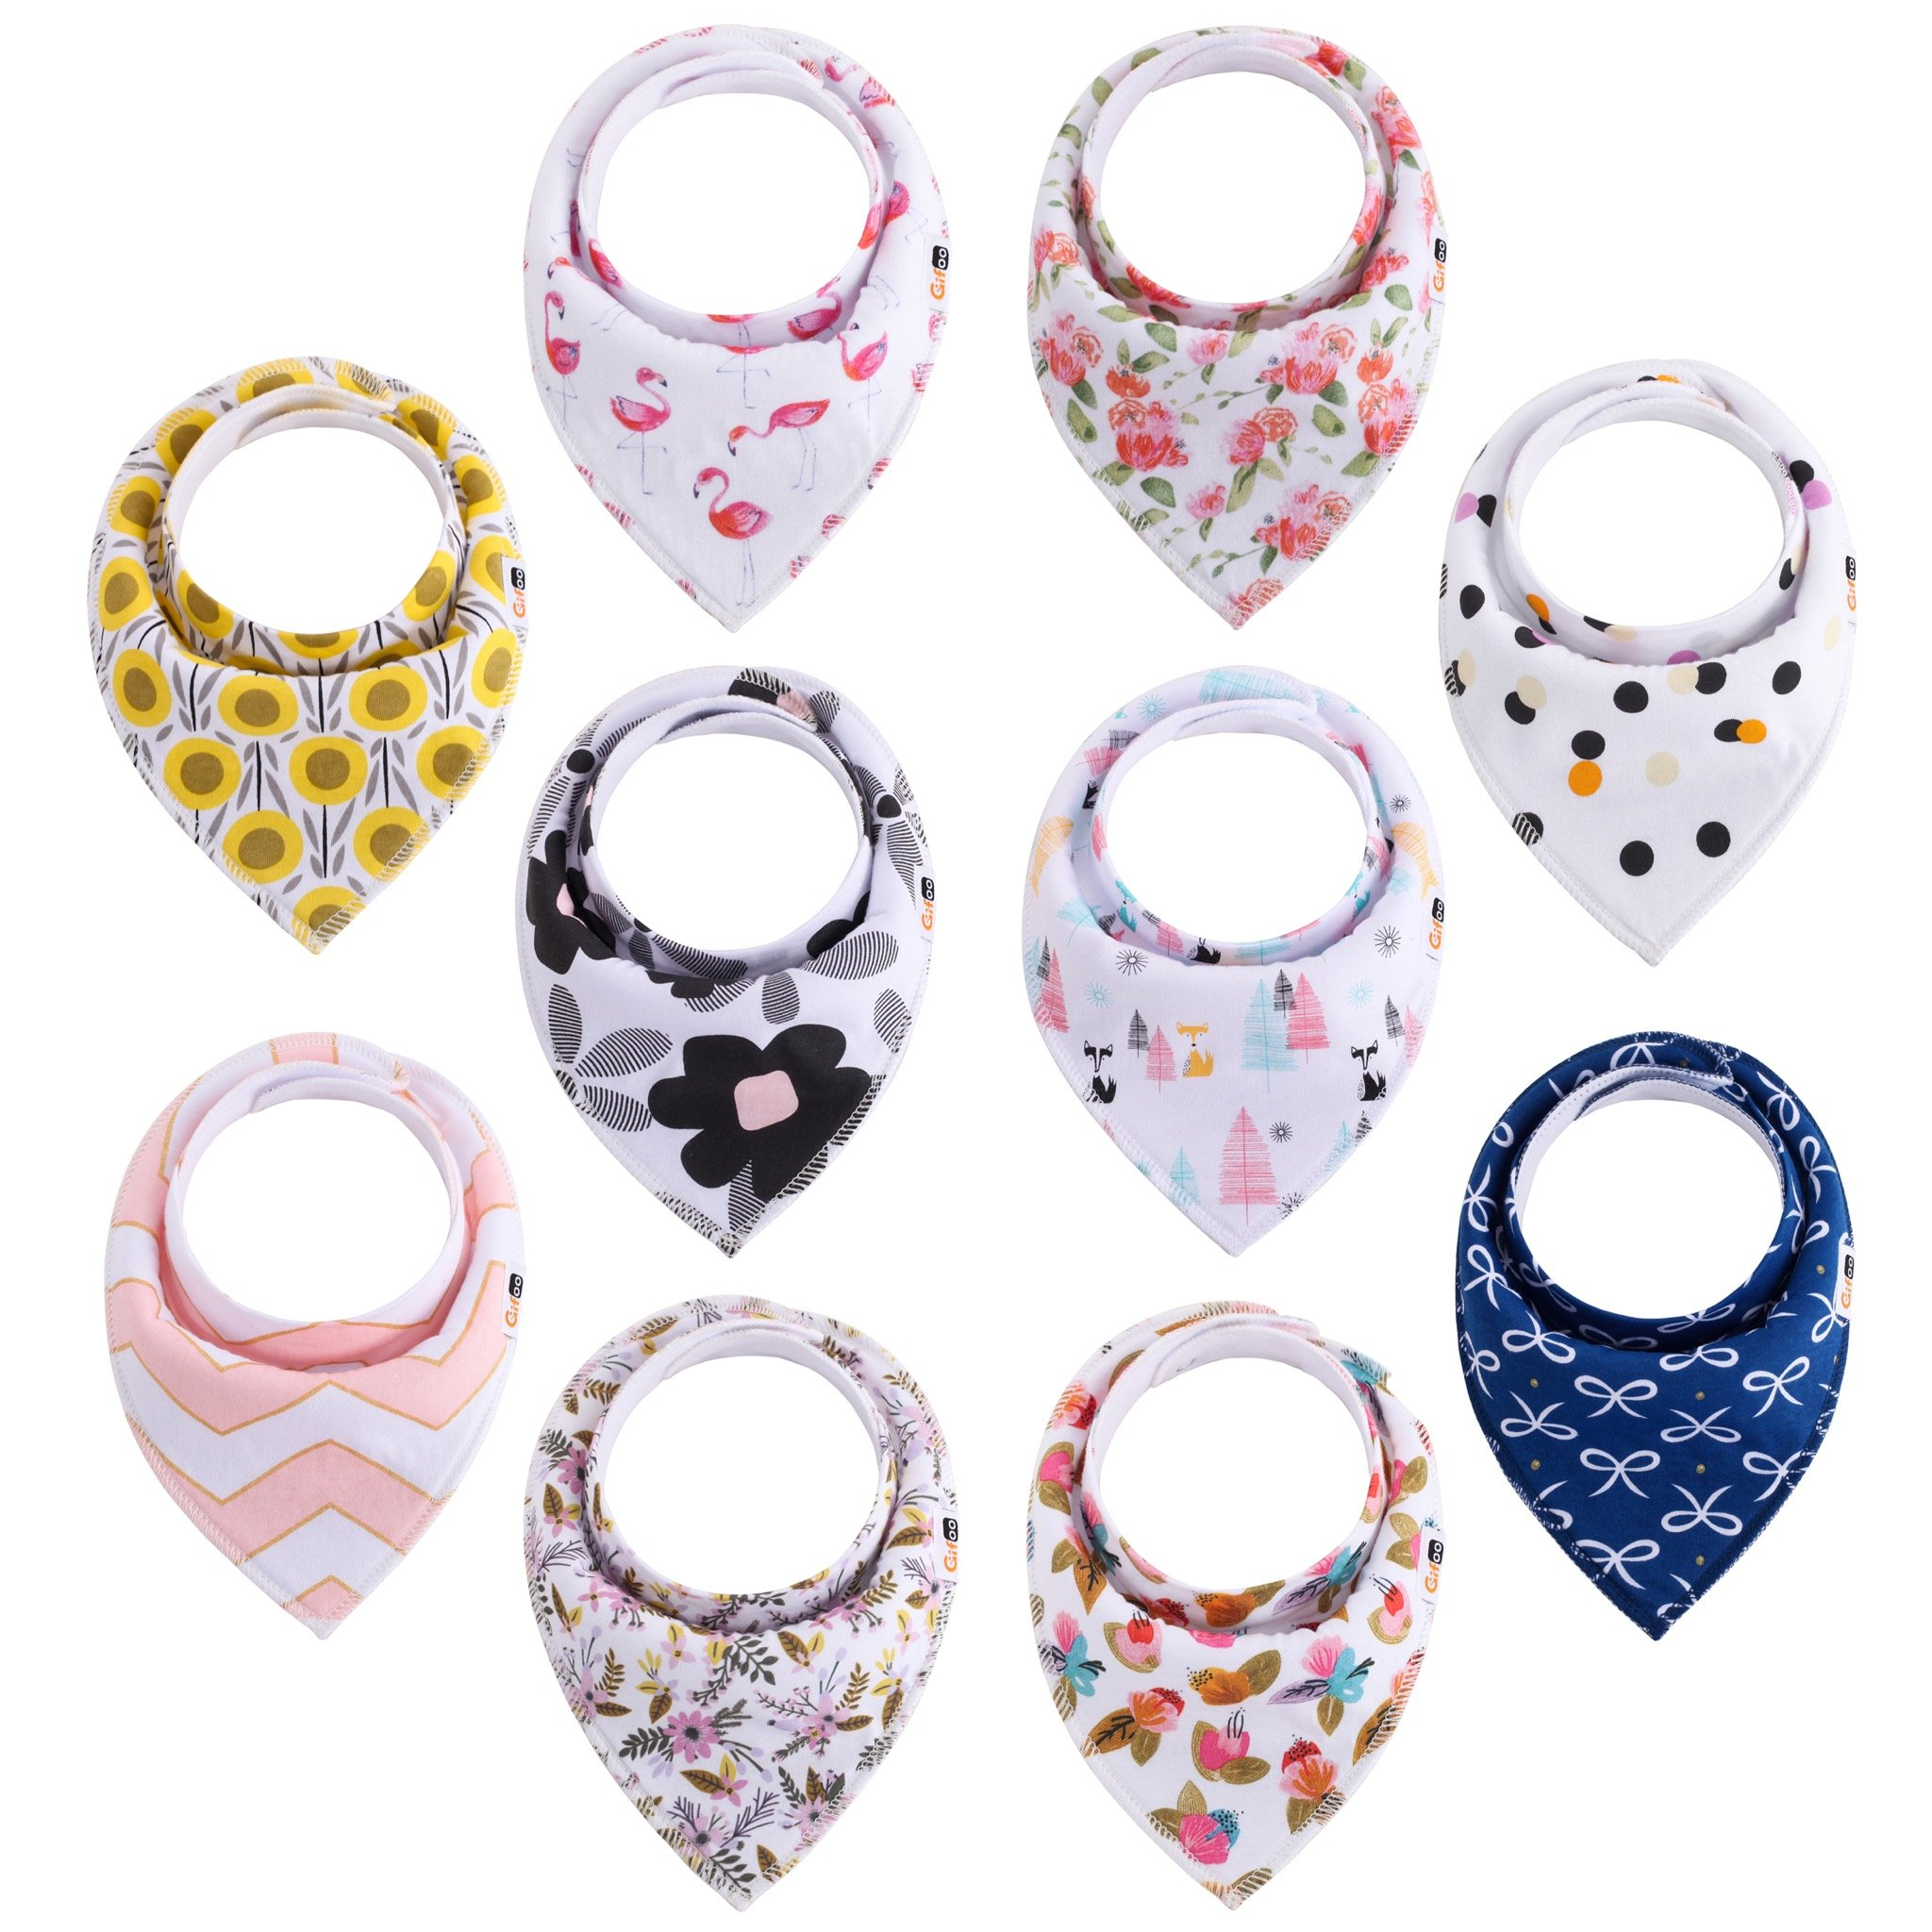 Baby Bandana Drool Bibs for Girls,Floral 10-Pack with Adjustable Snaps for Baby Shower Gift, 100% Organic Cotton, Soft, Absorbent and Stylish for Drooling and Teething Baby and Toddler by Gifoo!